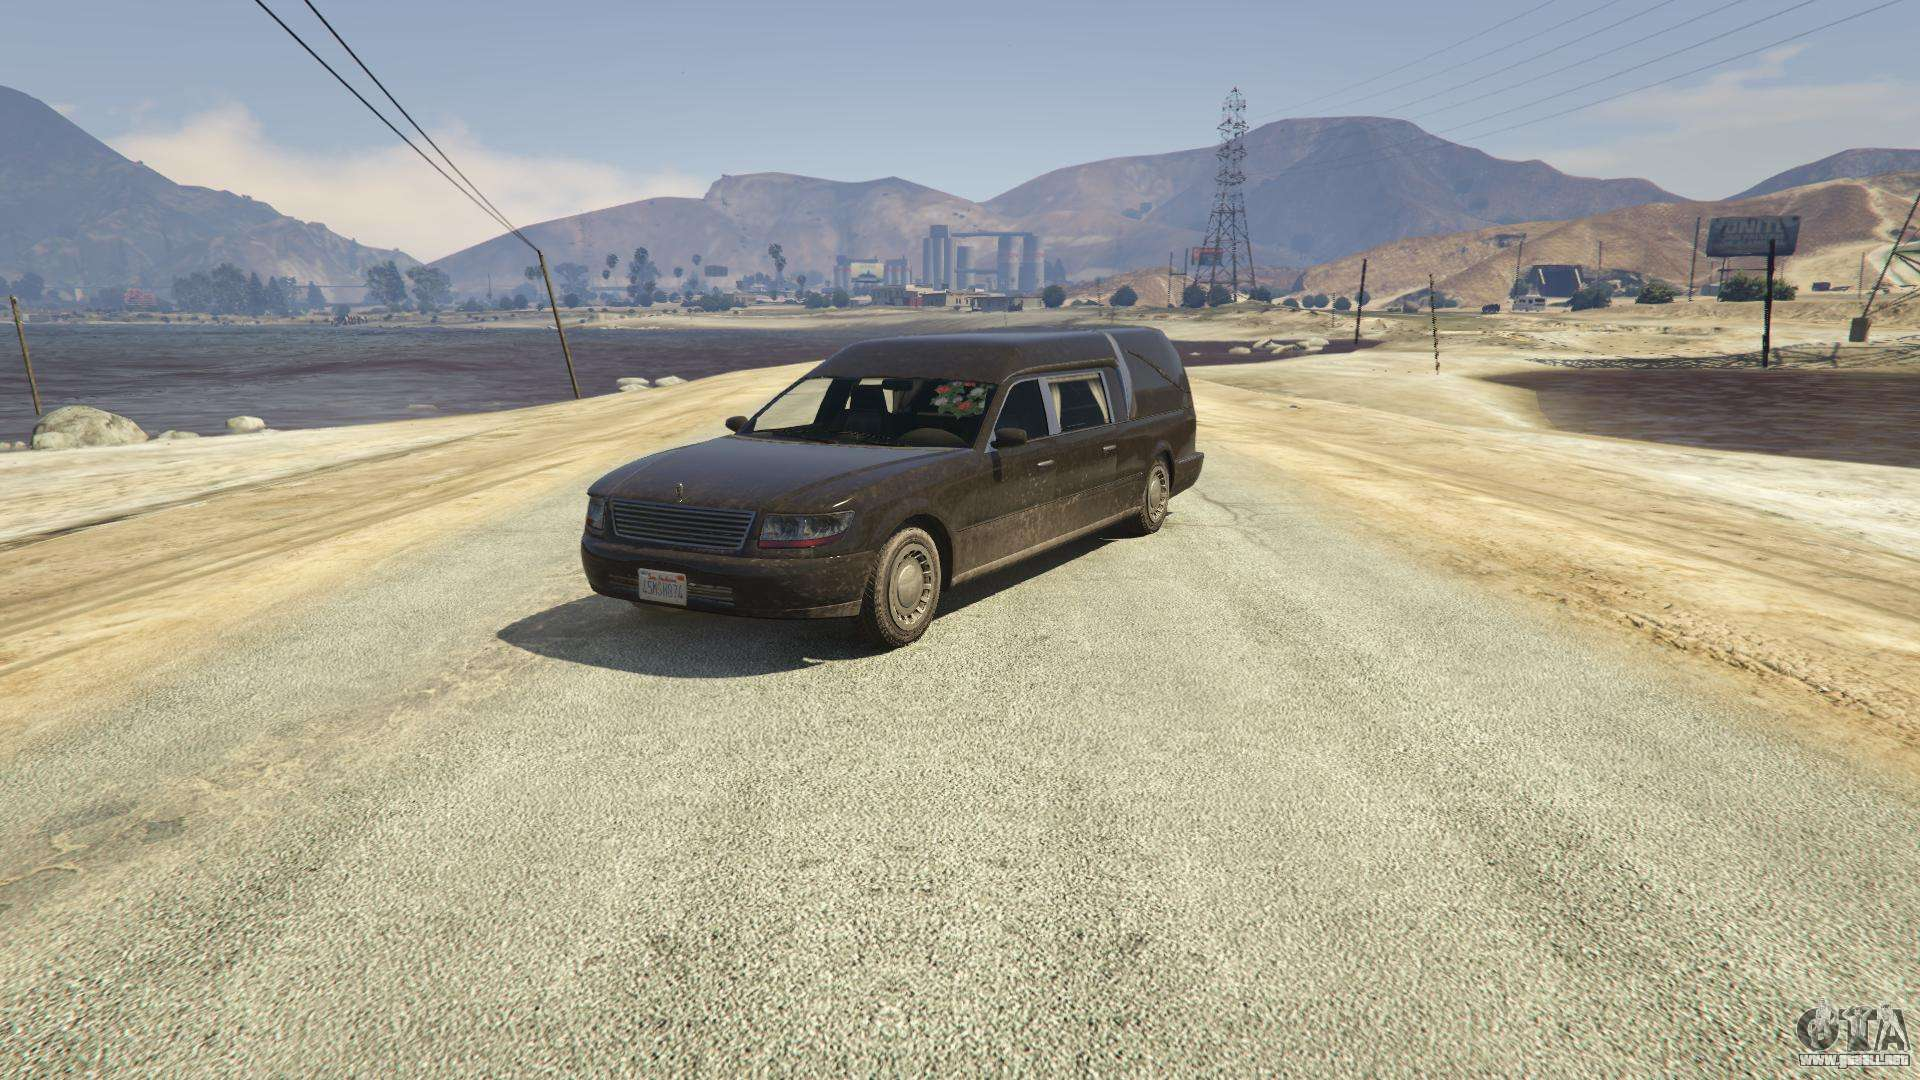 Carro Romero de GTA 5 - vista frontal